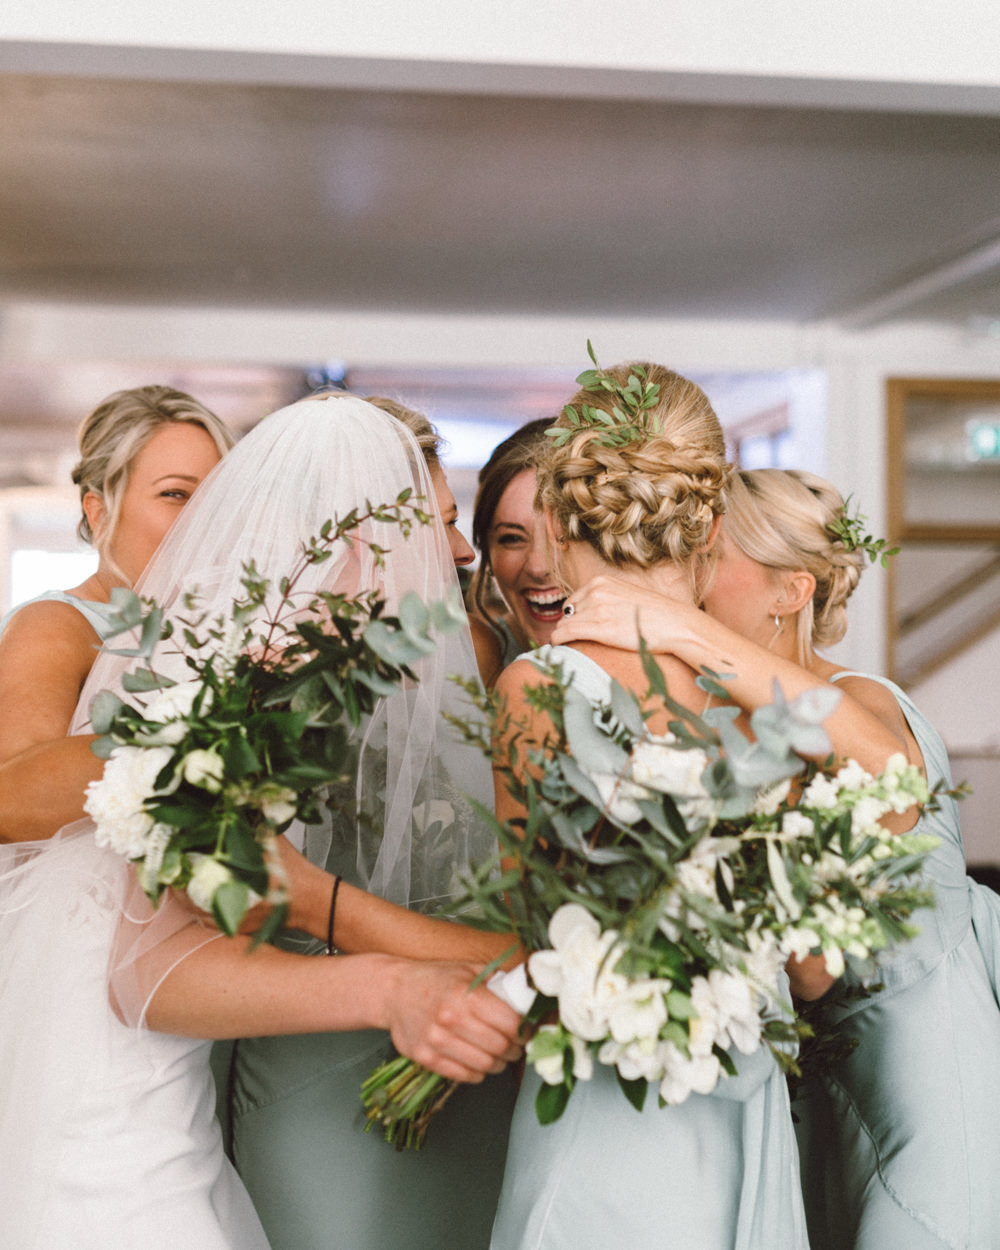 Wedding Reception Venues In Portsmouth: Greenery Wedding At The Harbour Church In Portsmouth With